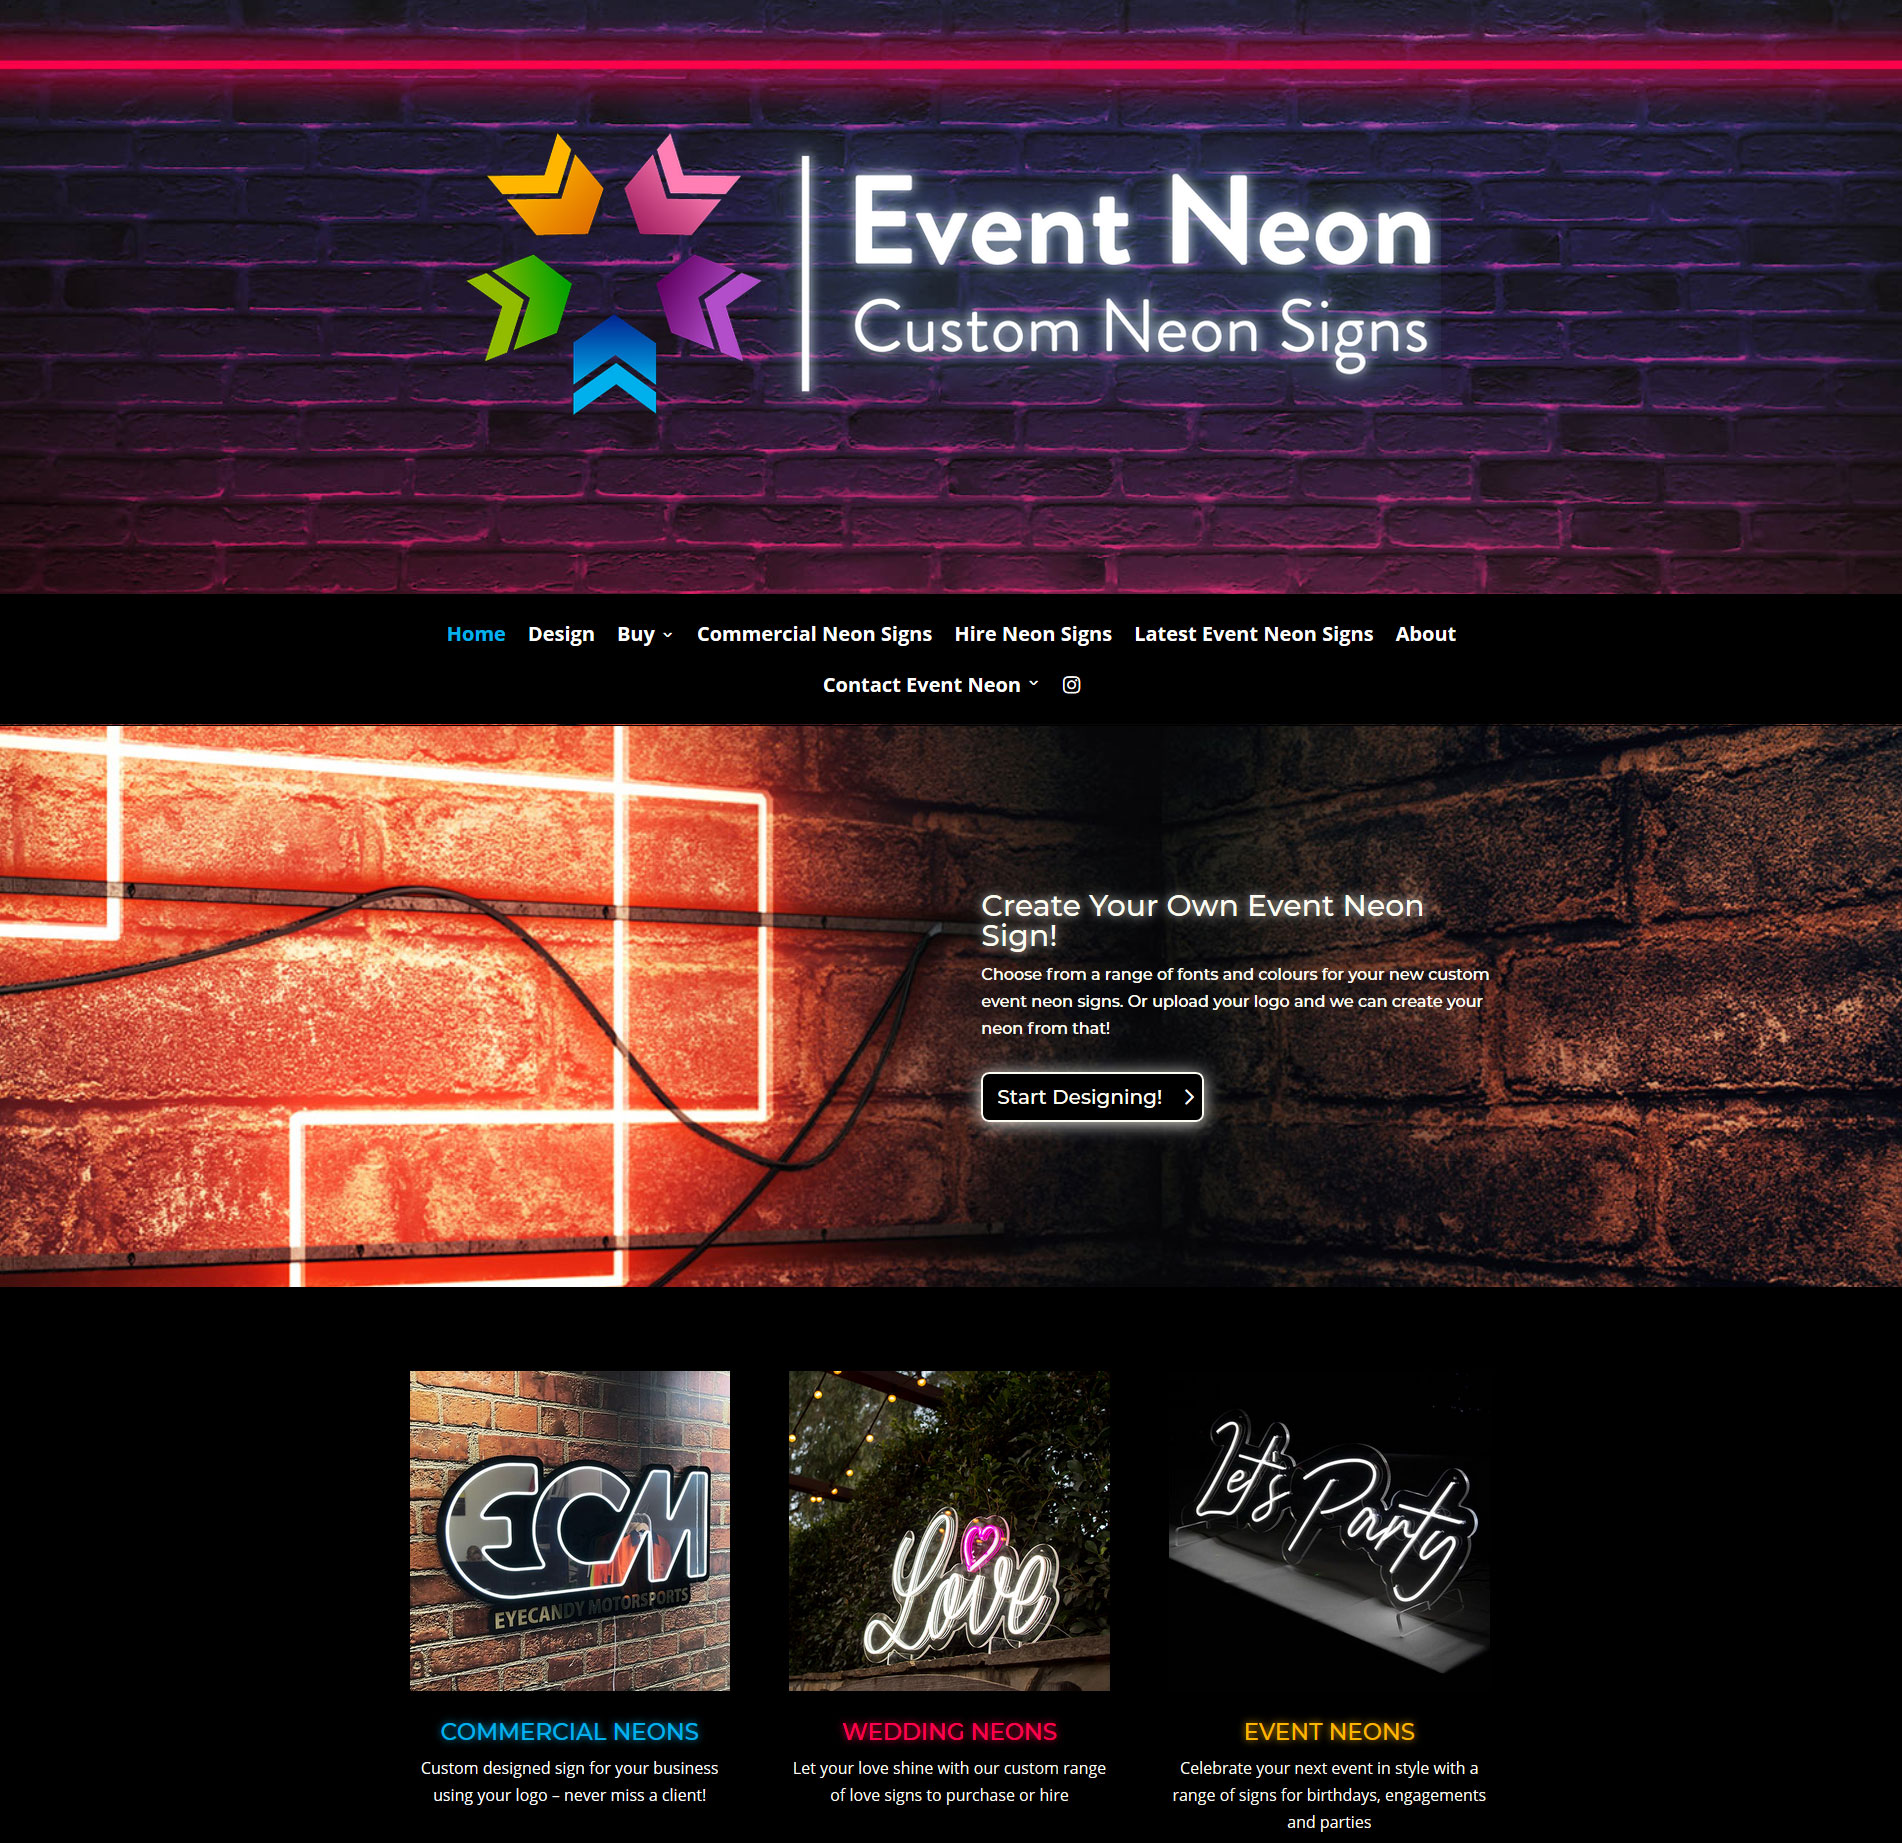 Web Marketing Angels - Latest Websites - Event Neon Signs